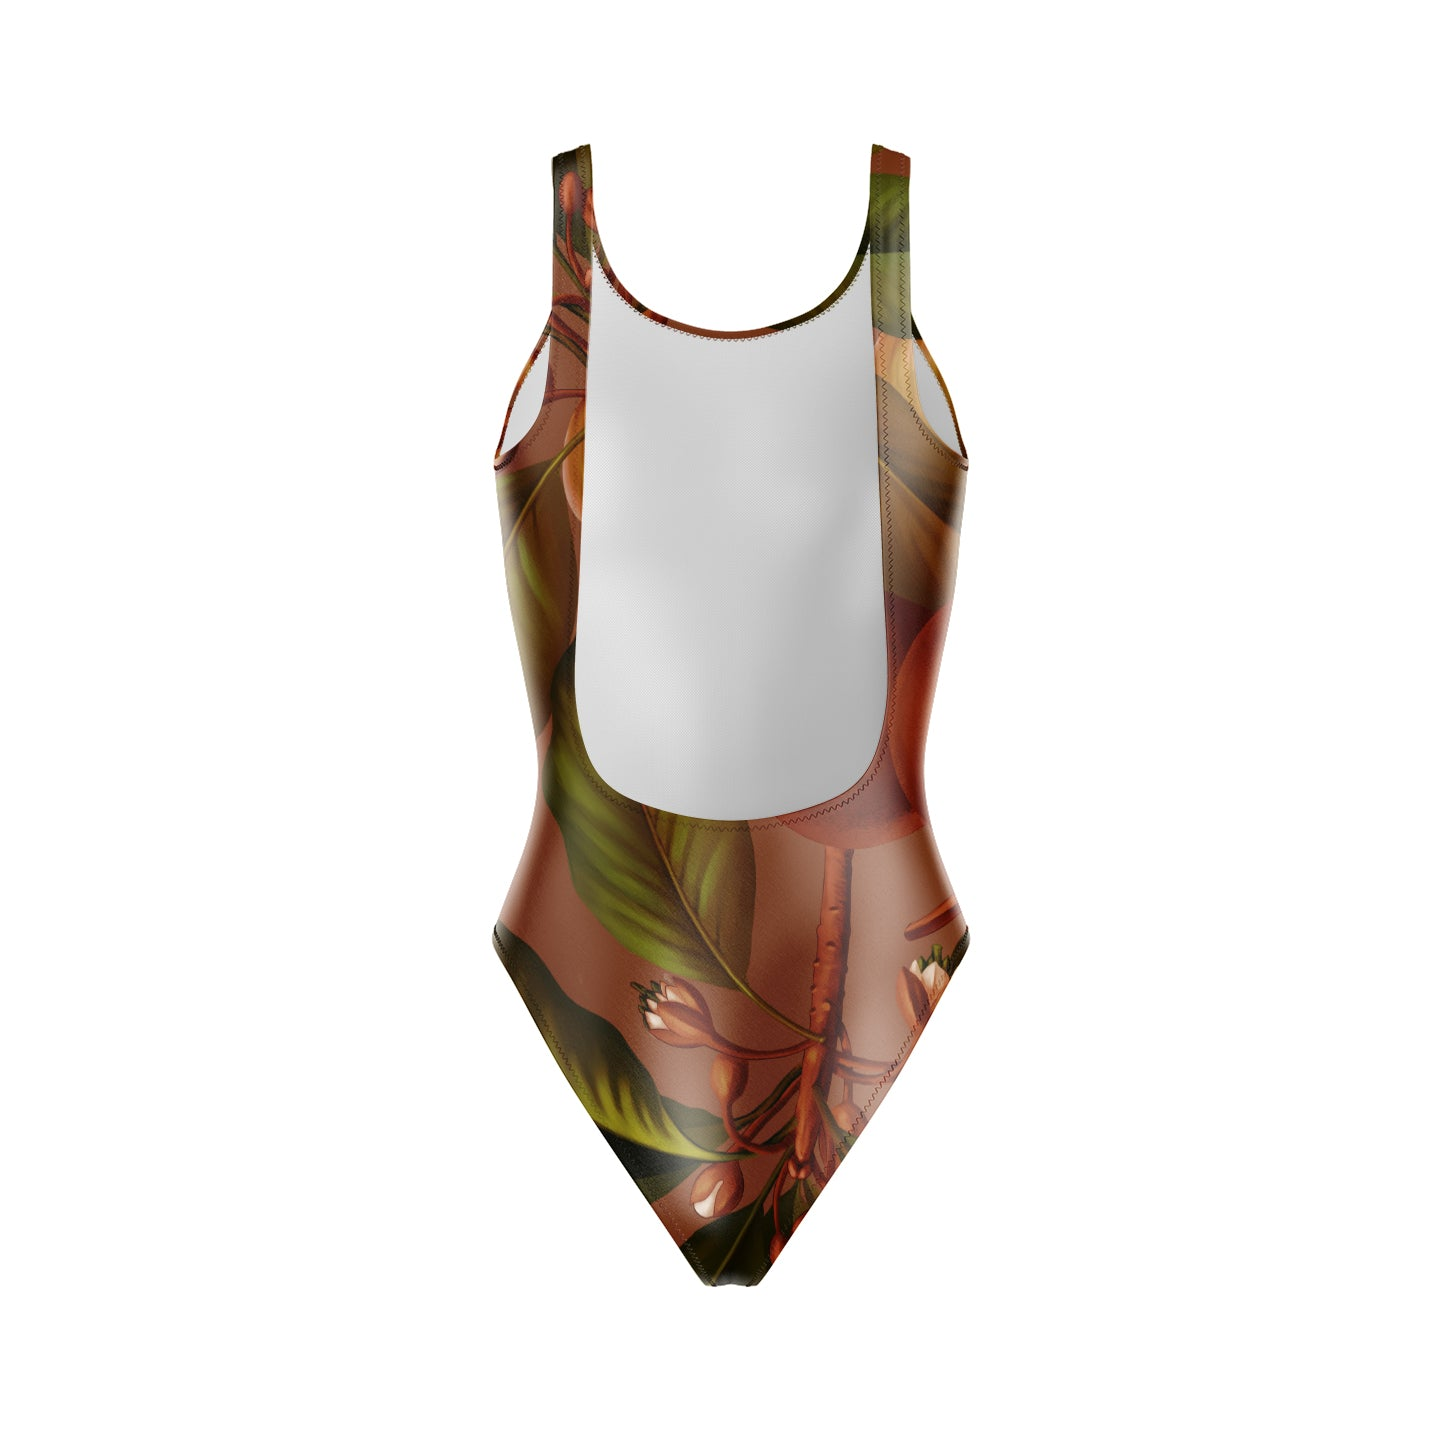 THE SAPODILLA SWIMSUIT